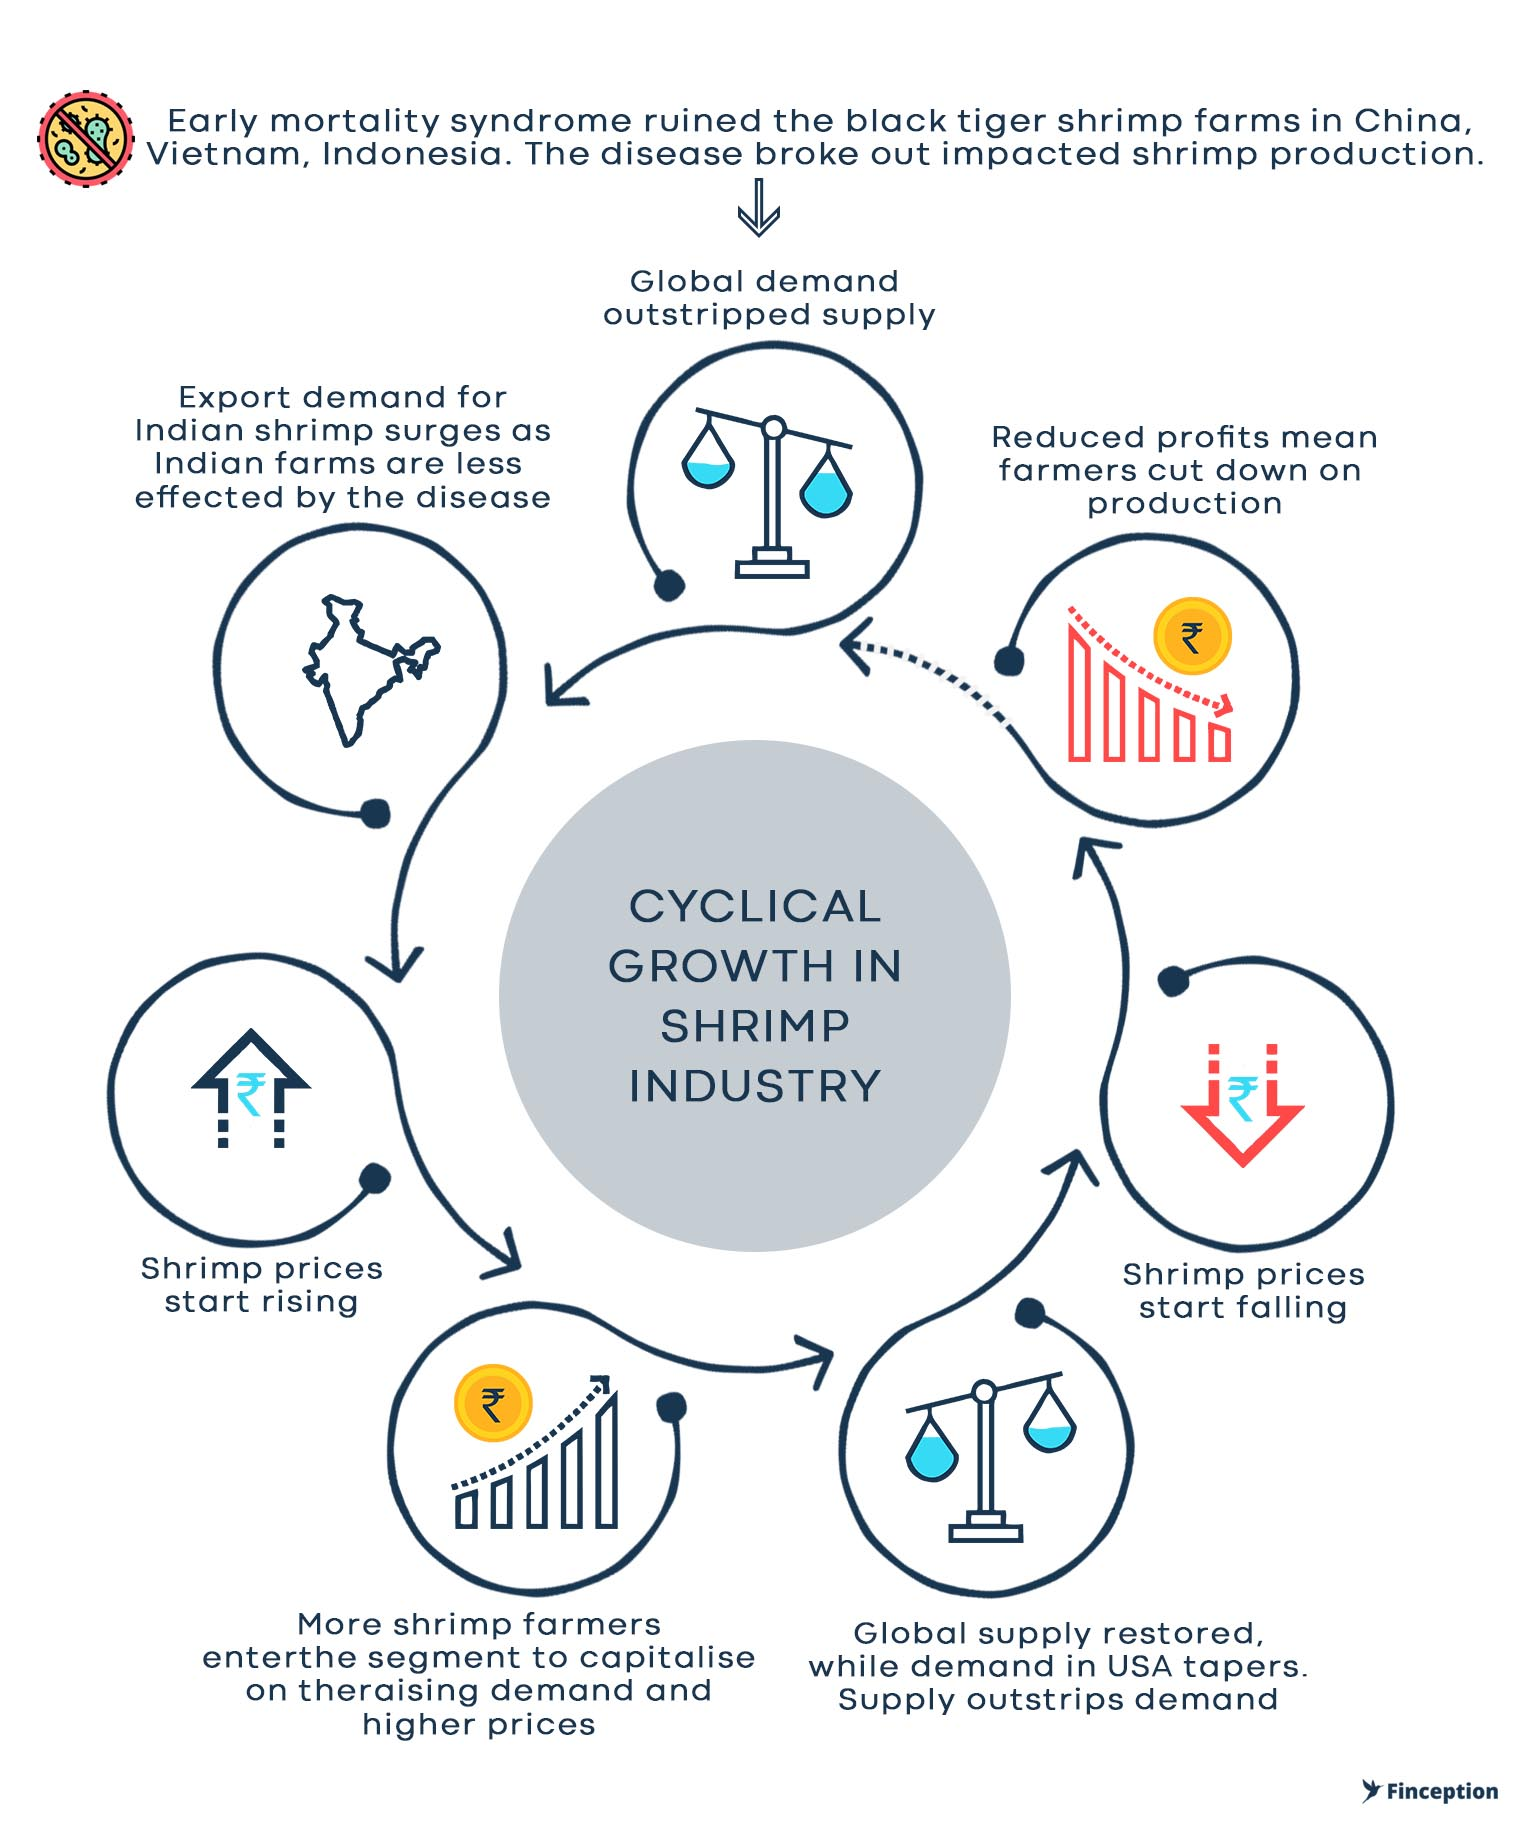 Cyclical growth in Shrimp industry